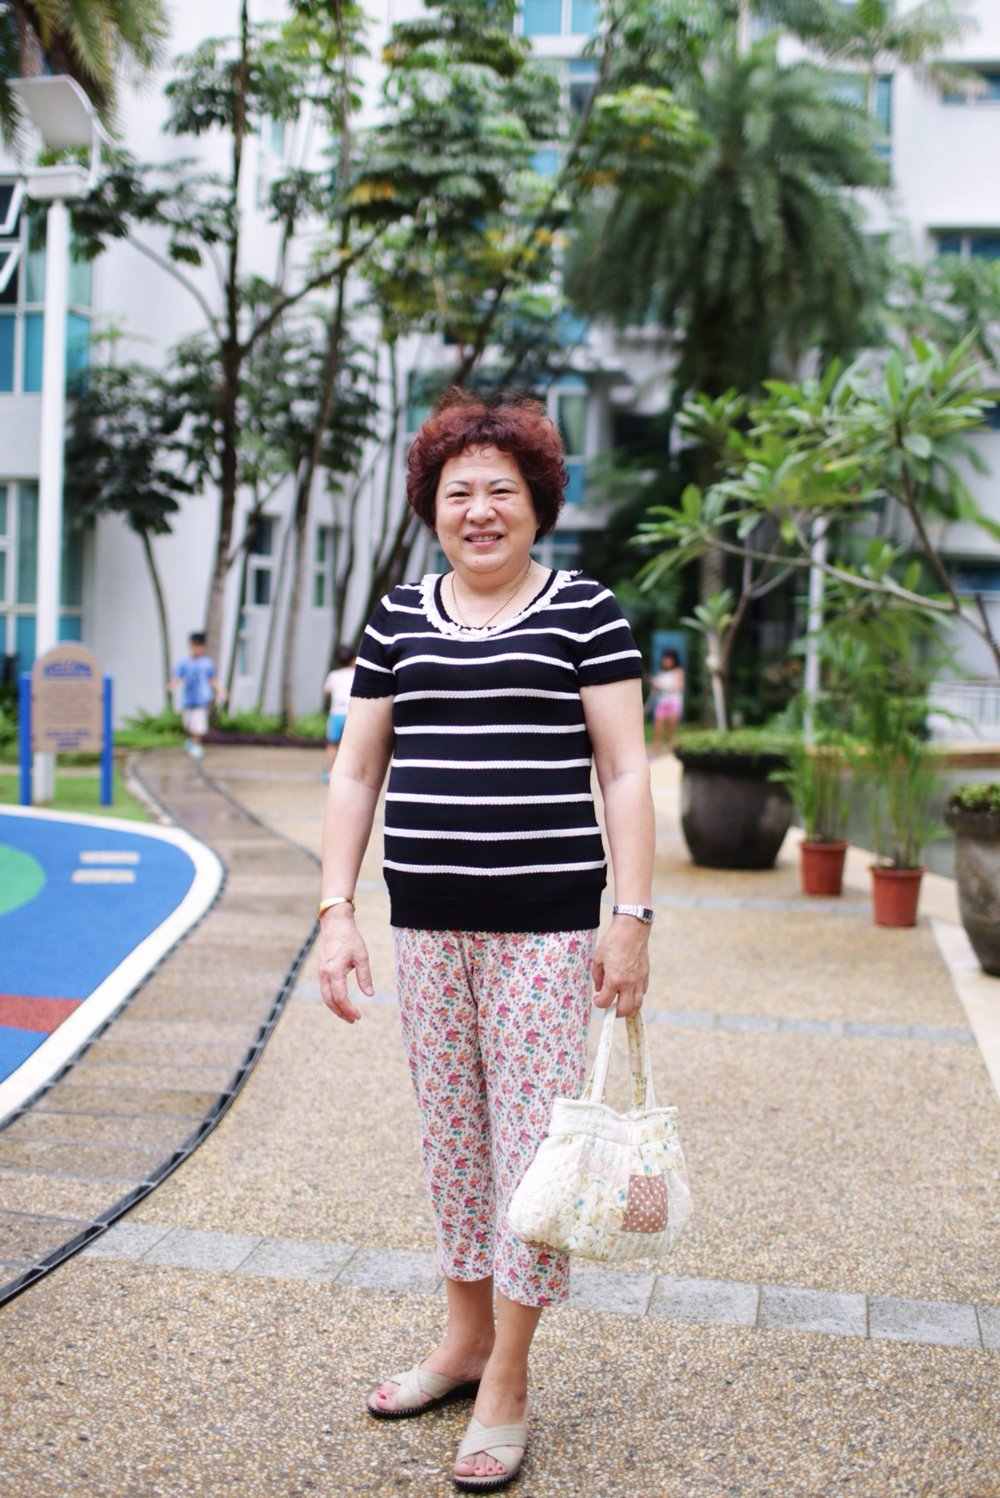 This lady lives in the apartment block and all the kids love her. They all call her Grandma as a respectful form of address.She couldn't speak English and I couldn't speak Malay so we communicated in sign language.All the kids in the apartments love this lady.They all call her Grandma as a respectful form of address. This lady lives in the apartment block where I'm staying with my friend and her children.